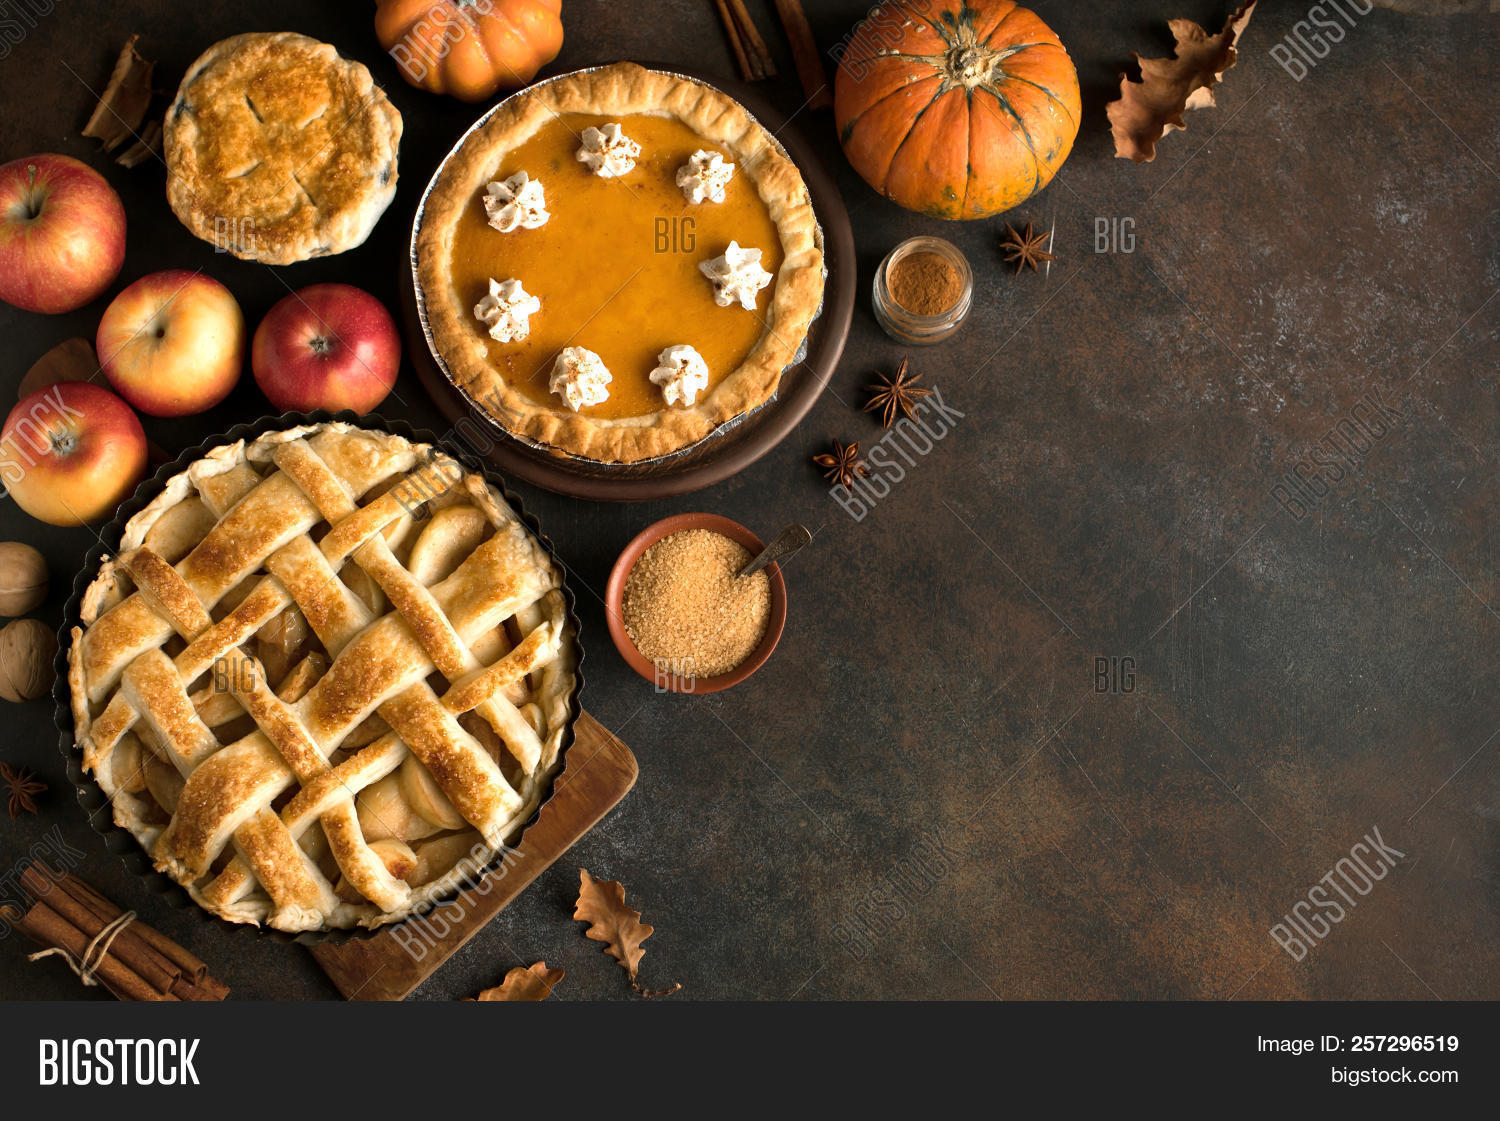 above,american,apple,assorted,autumn,background,baked,brown,cake,cinnamon,copy,cream,crust,delicious,dessert,fall,festive,food,fresh,fruit,golden,holiday,homemade,ingredient,lattice,leaves,orange,overhead,pastry,pecan,pie,piece,pies,pumpkin,rustic,seasonal,space,sugar,sweet,table,tart,thanksgiving,top,tradition,traditional,treat,various,view,whipped,wooden